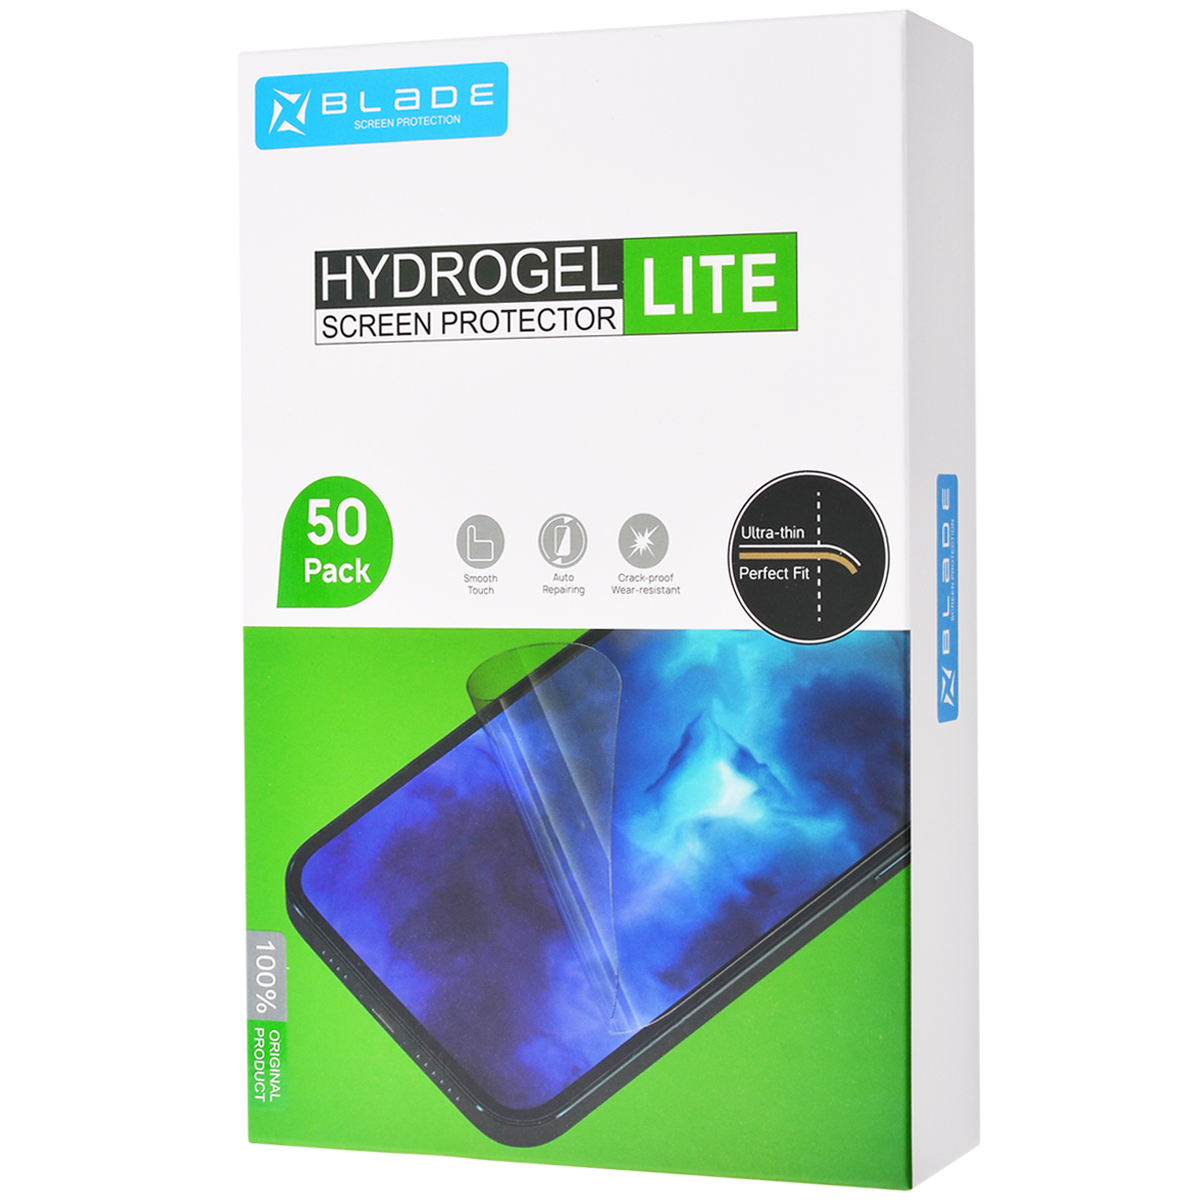 BLADE Hydrogel Screen Protection Lite